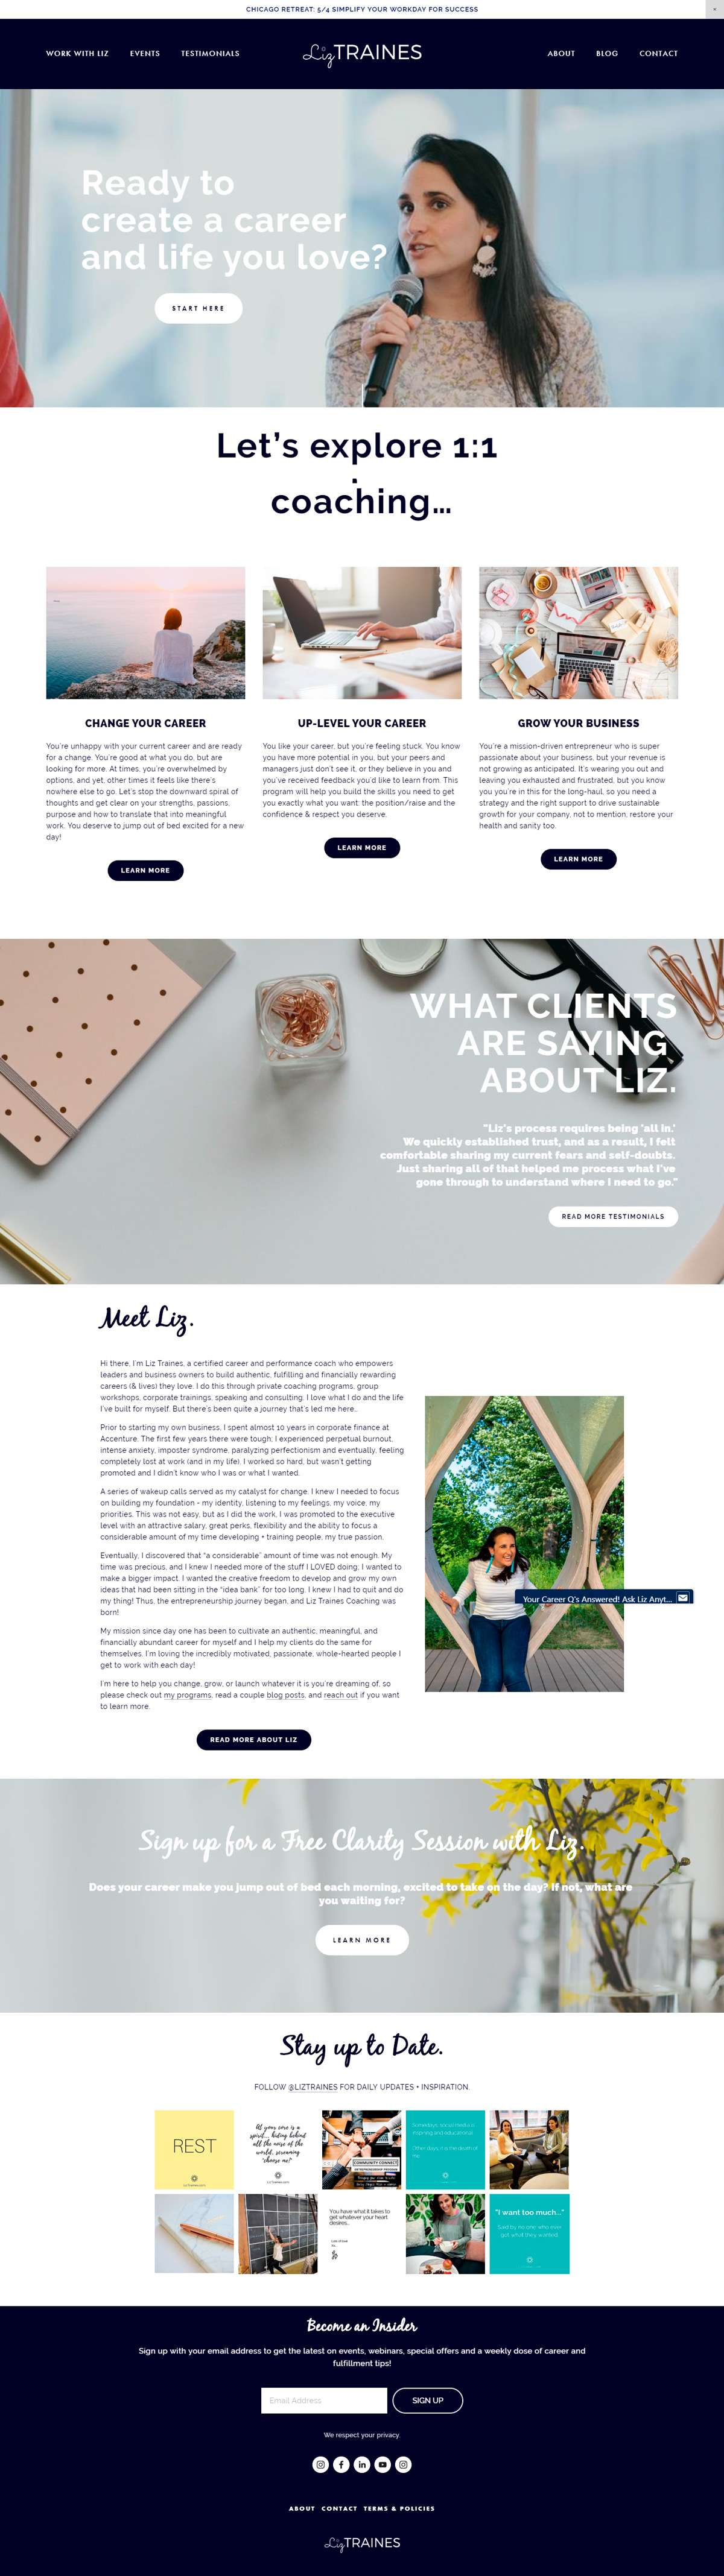 Want to see the best coaching websites in Squarespace? This one is for business coach, Liz Traines. Click through for inspiration for your website | www.jessicahainesdesign.com